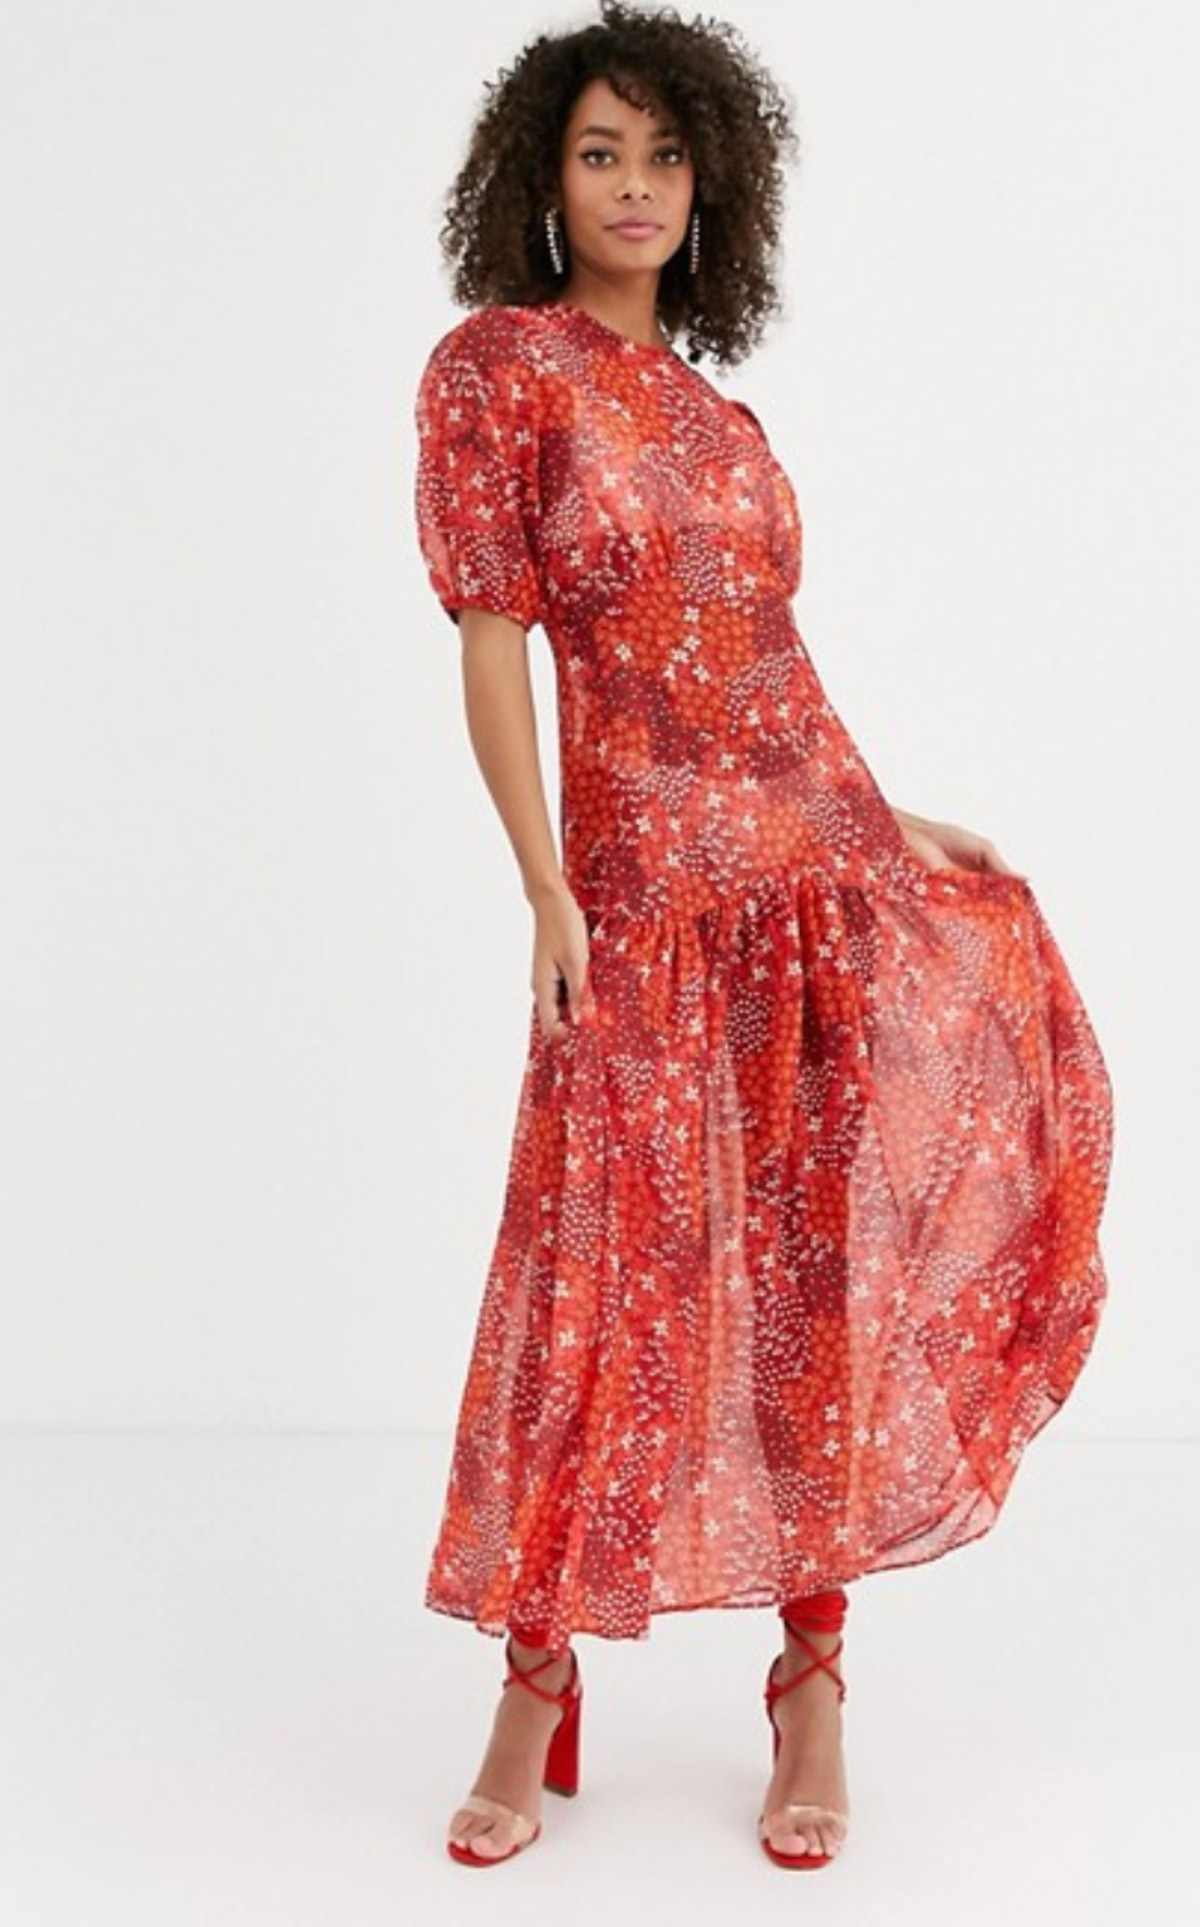 ASOS Never Fully Dressed puff sleeve midi dress in red floral print